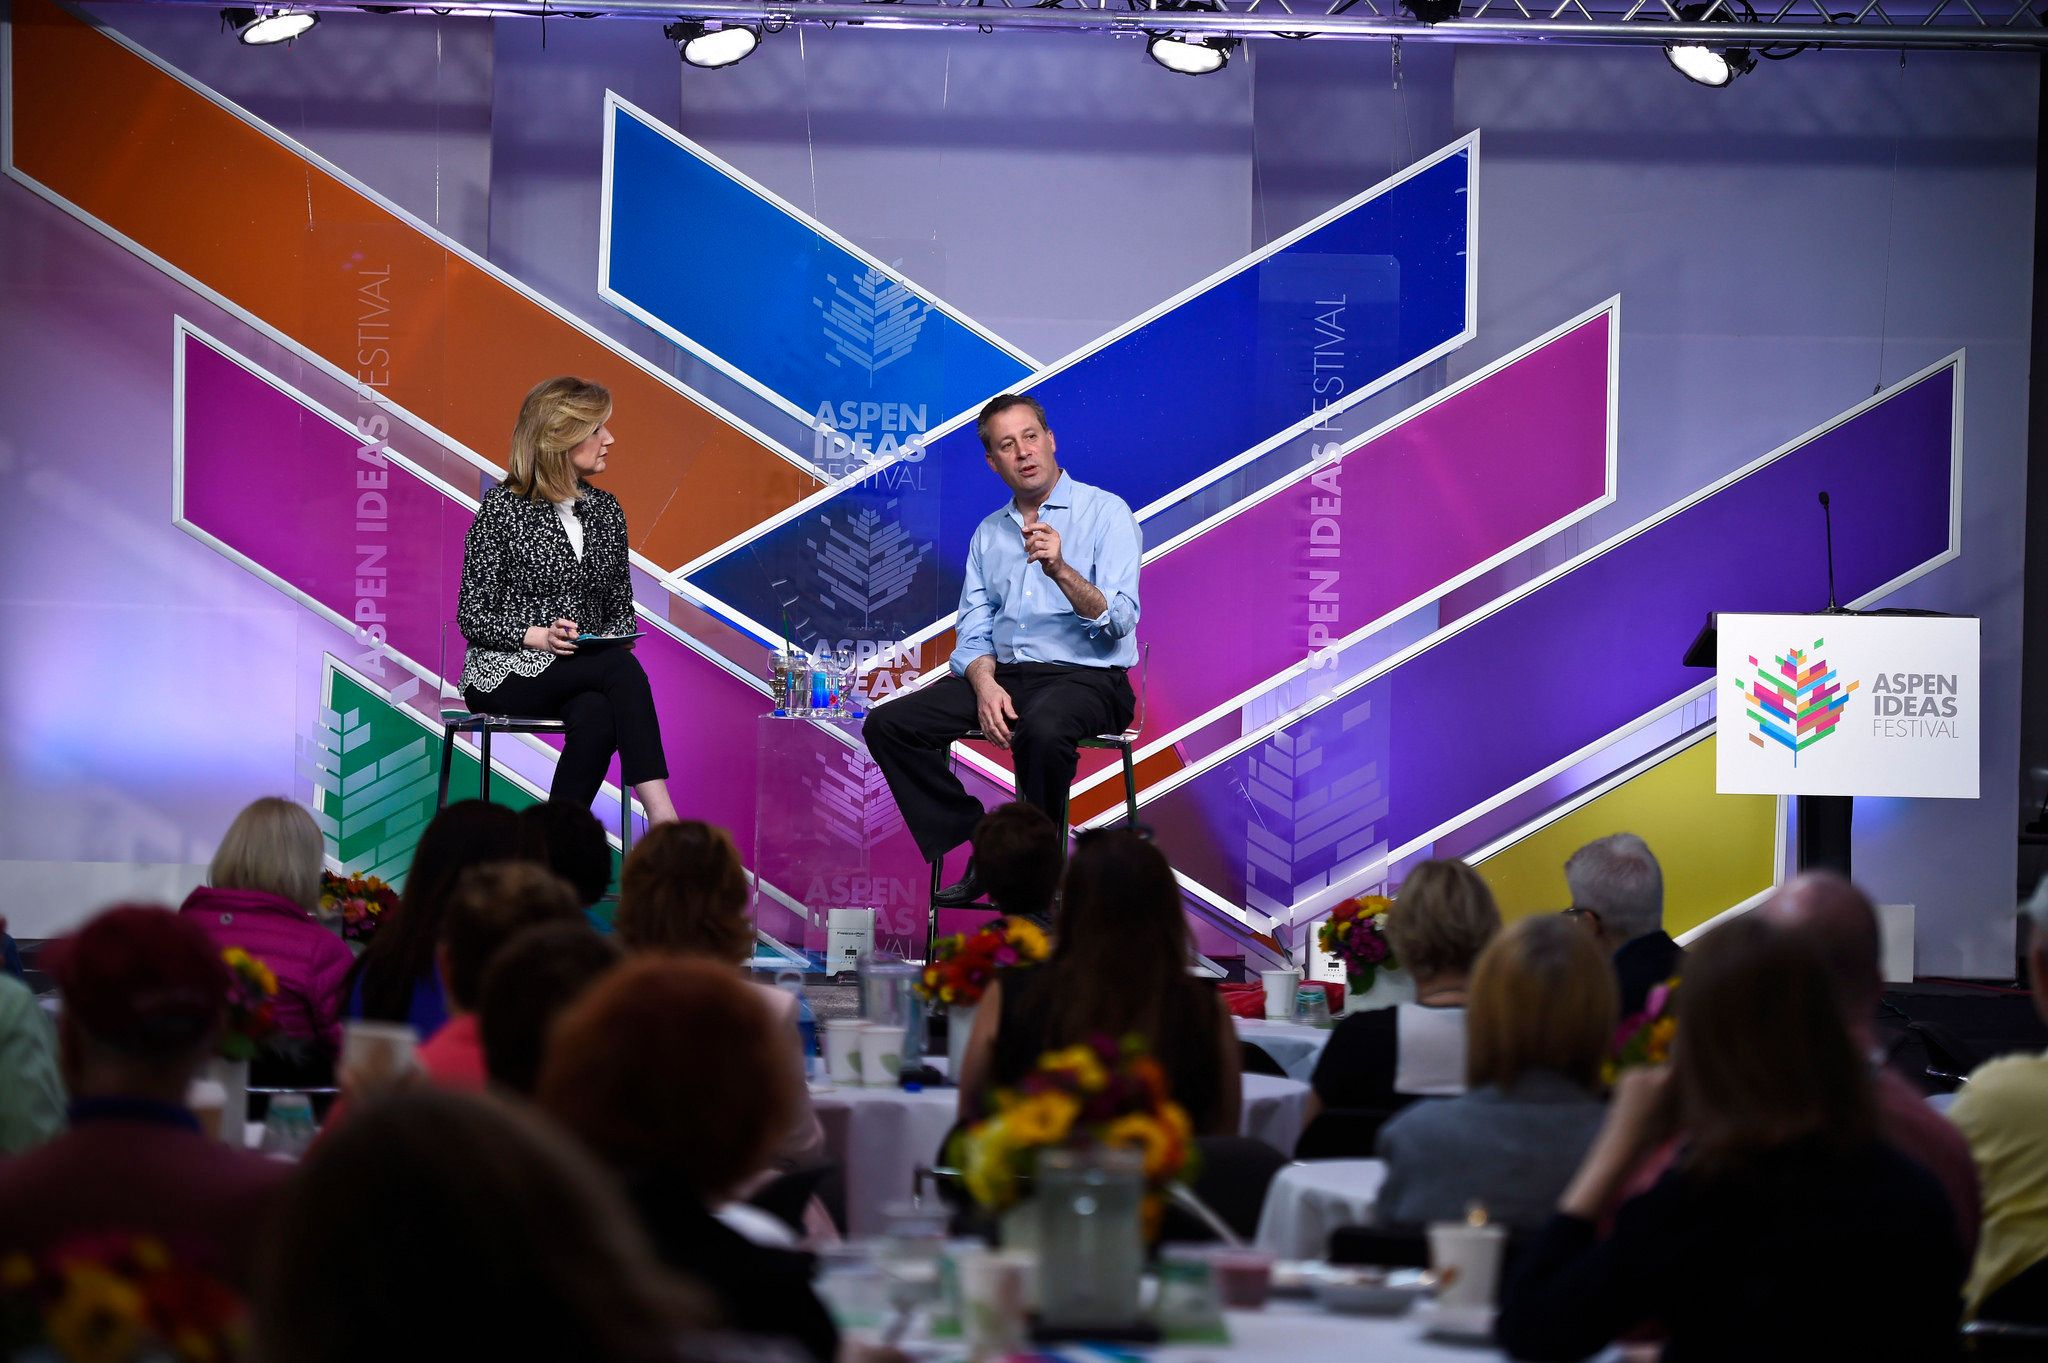 Arianna Huffington and Tony Marx at the 11th annual Aspen Ideas Festival in June 2015.